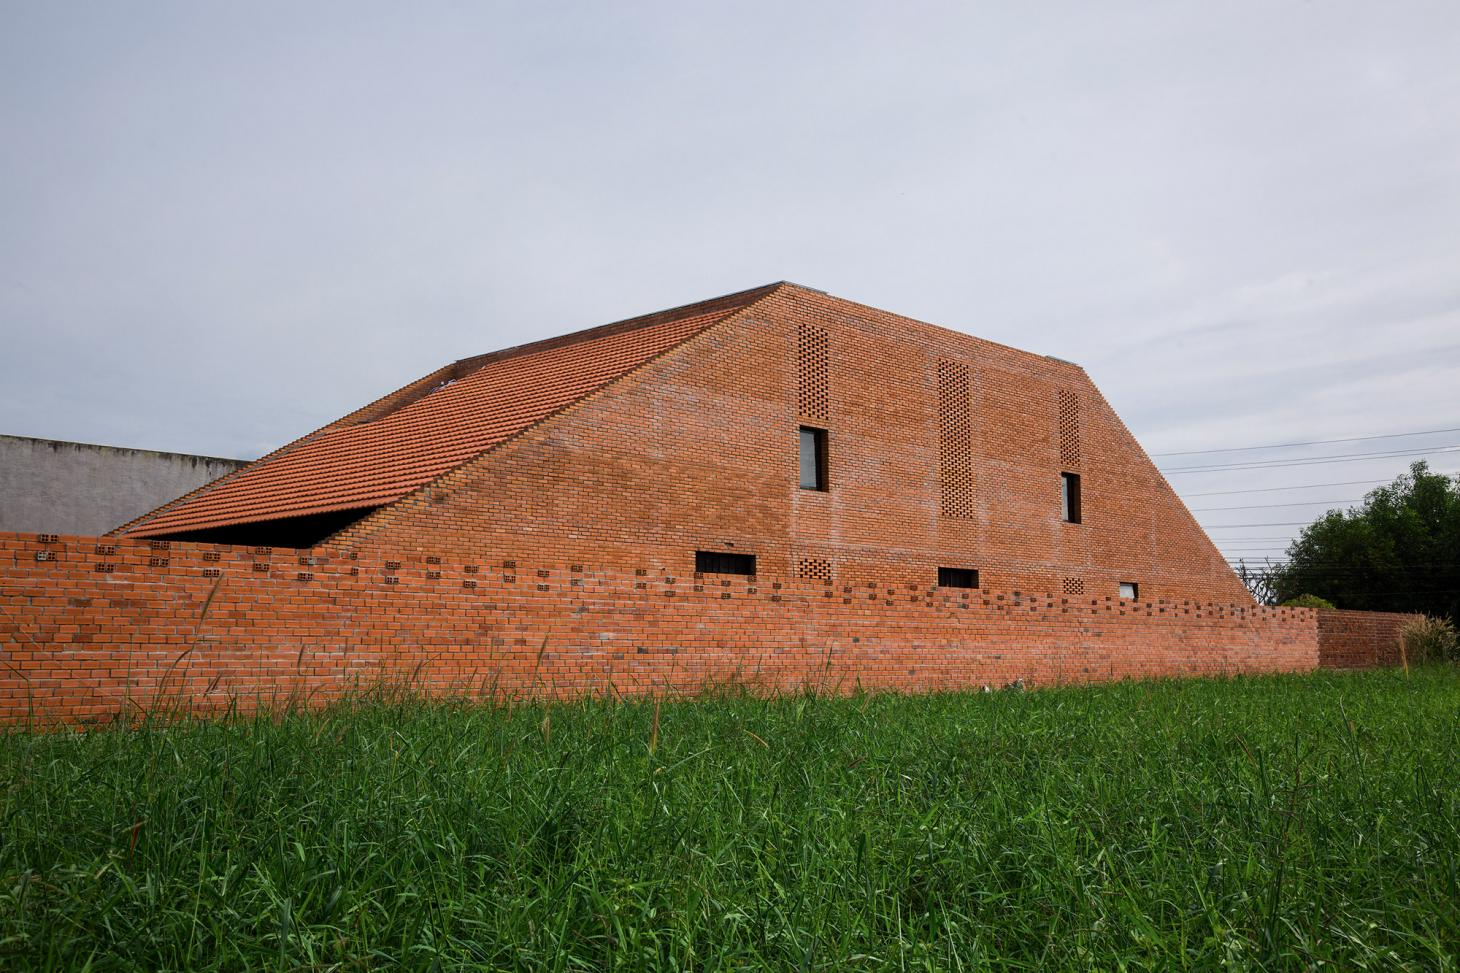 the brick form of a house designed by Tropical Space in Vietnam